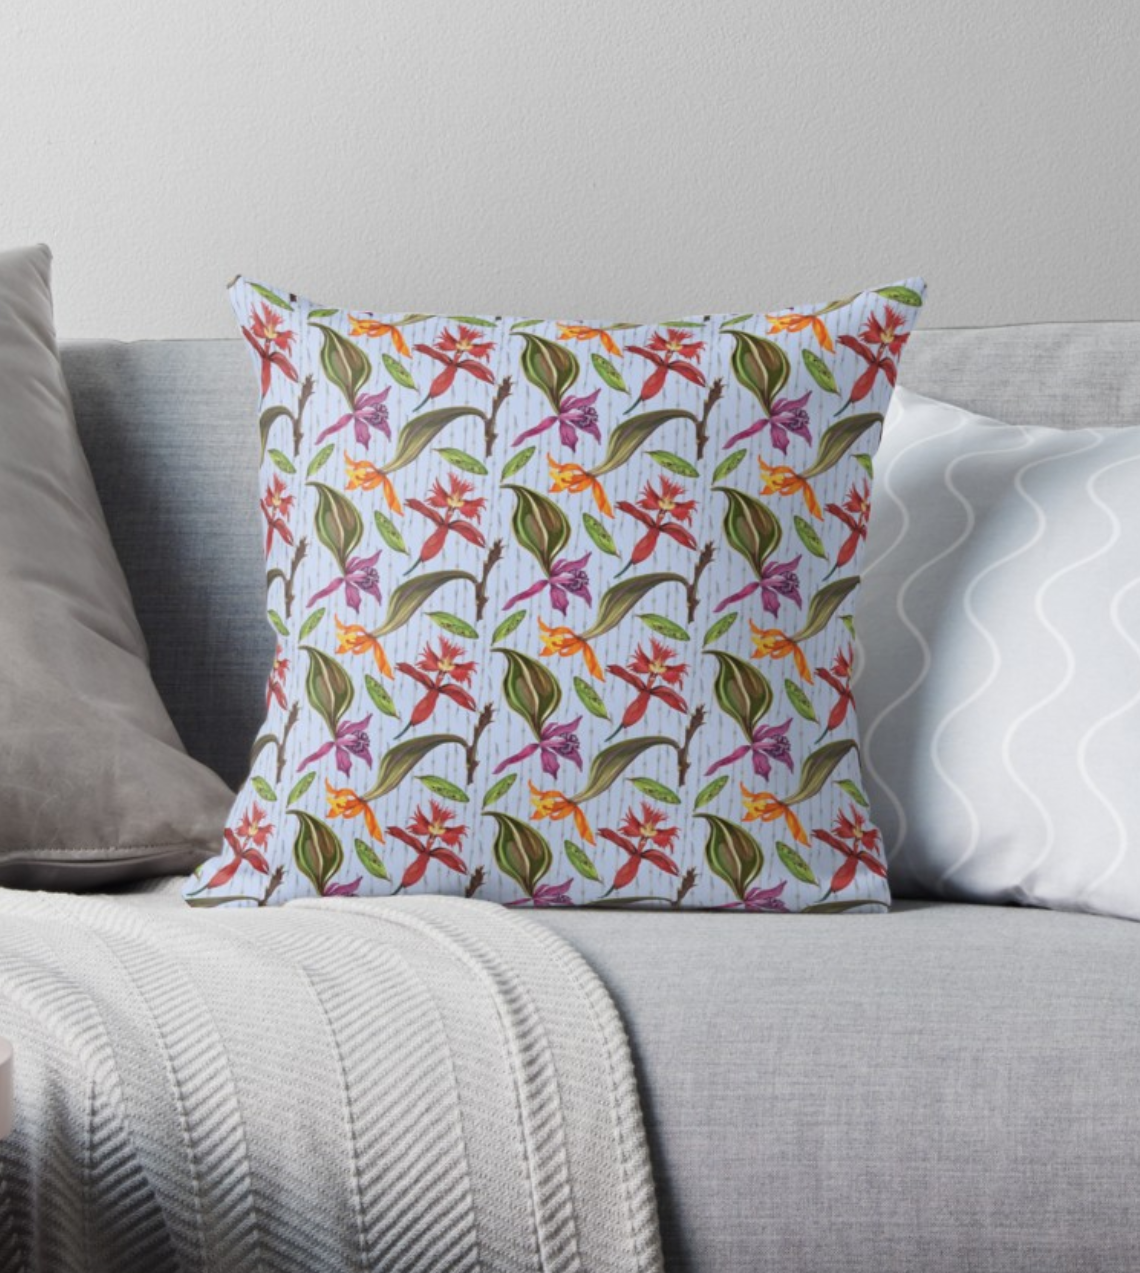 https://www.redbubble.com/people/christinemay/works/16519540-orchids-and-ink-flowers?grid_pos=27&p=throw-pillow&rbs=53315a0c-92e0-456c-a878-74ba9e6f6286&ref=artist_shop_grid